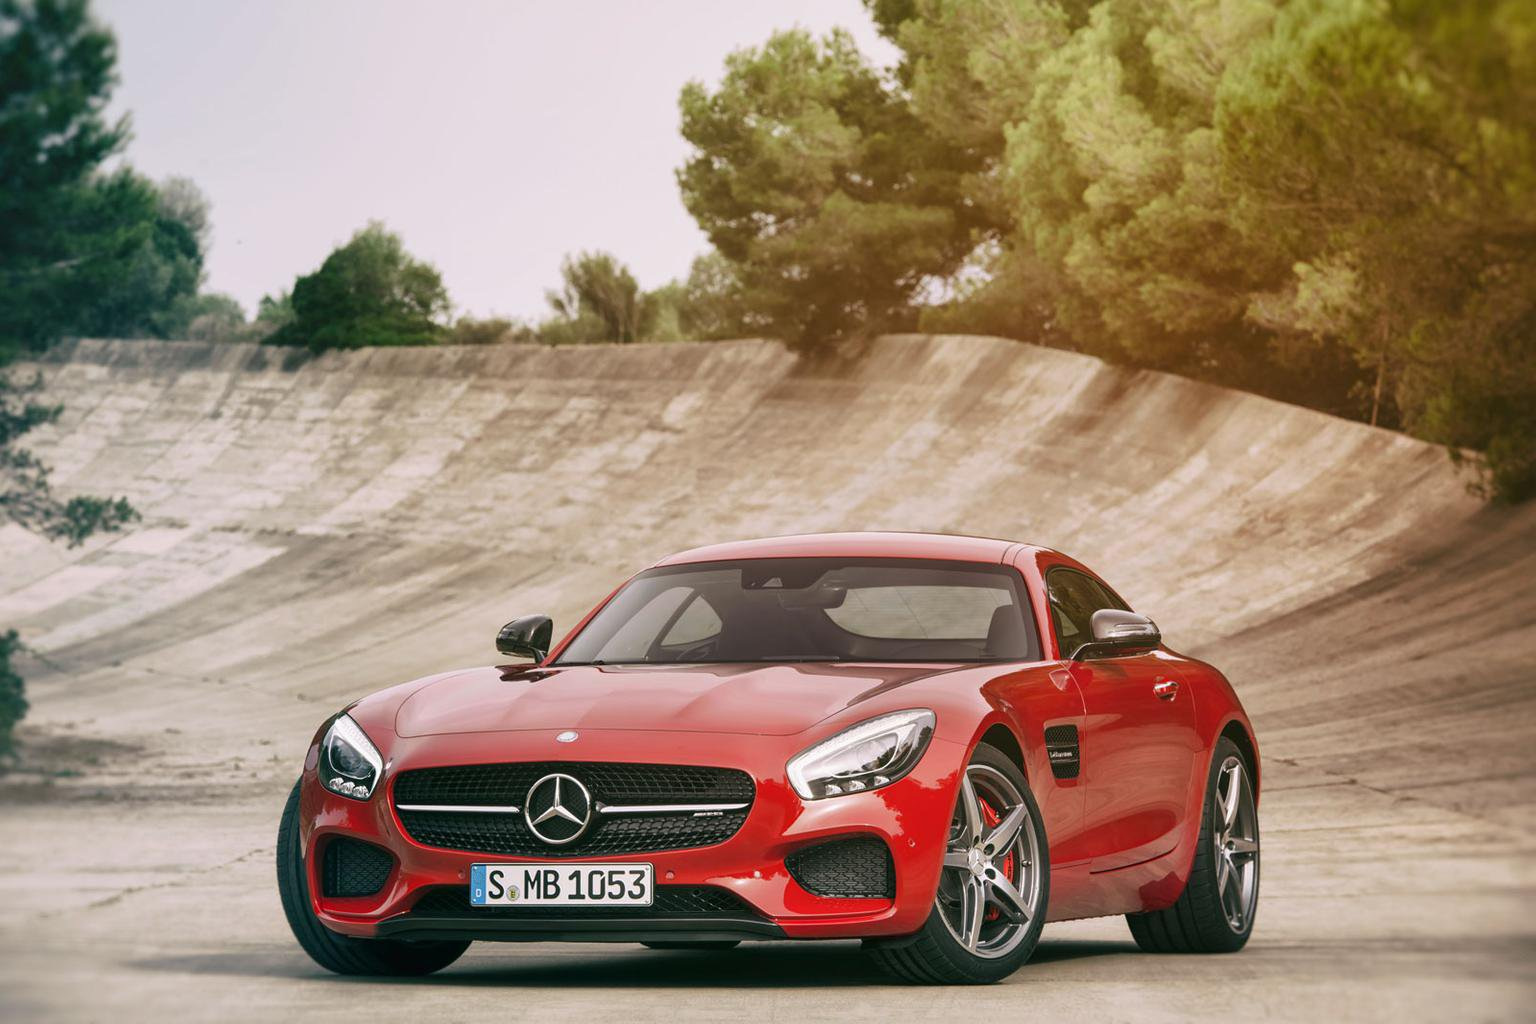 2015 Mercedes-Benz AMG GT - pricing, engines and video